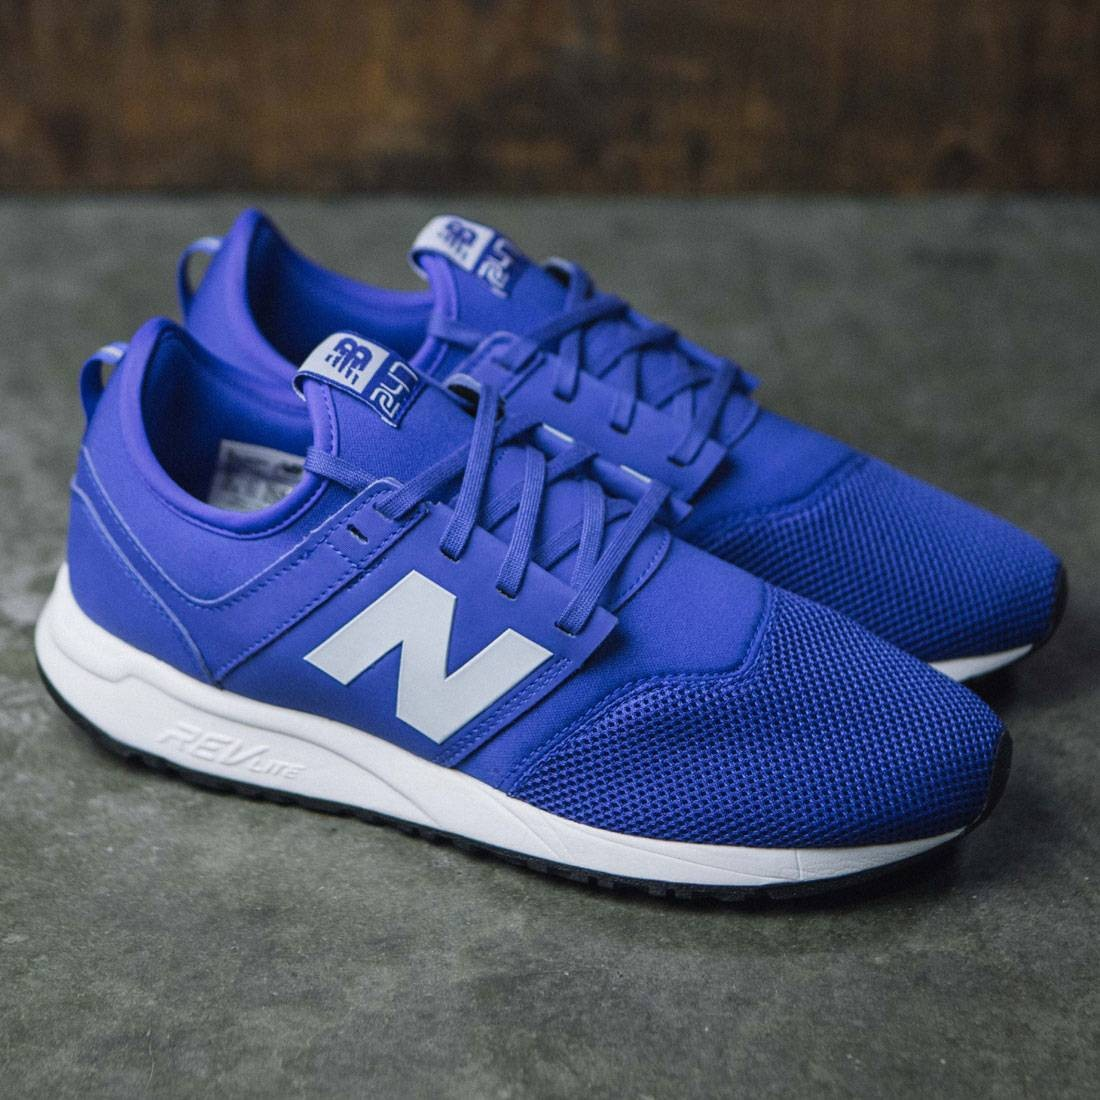 official store forefront of the times online shop New Balance Men 247 Classic MRL247BW (blue / white)